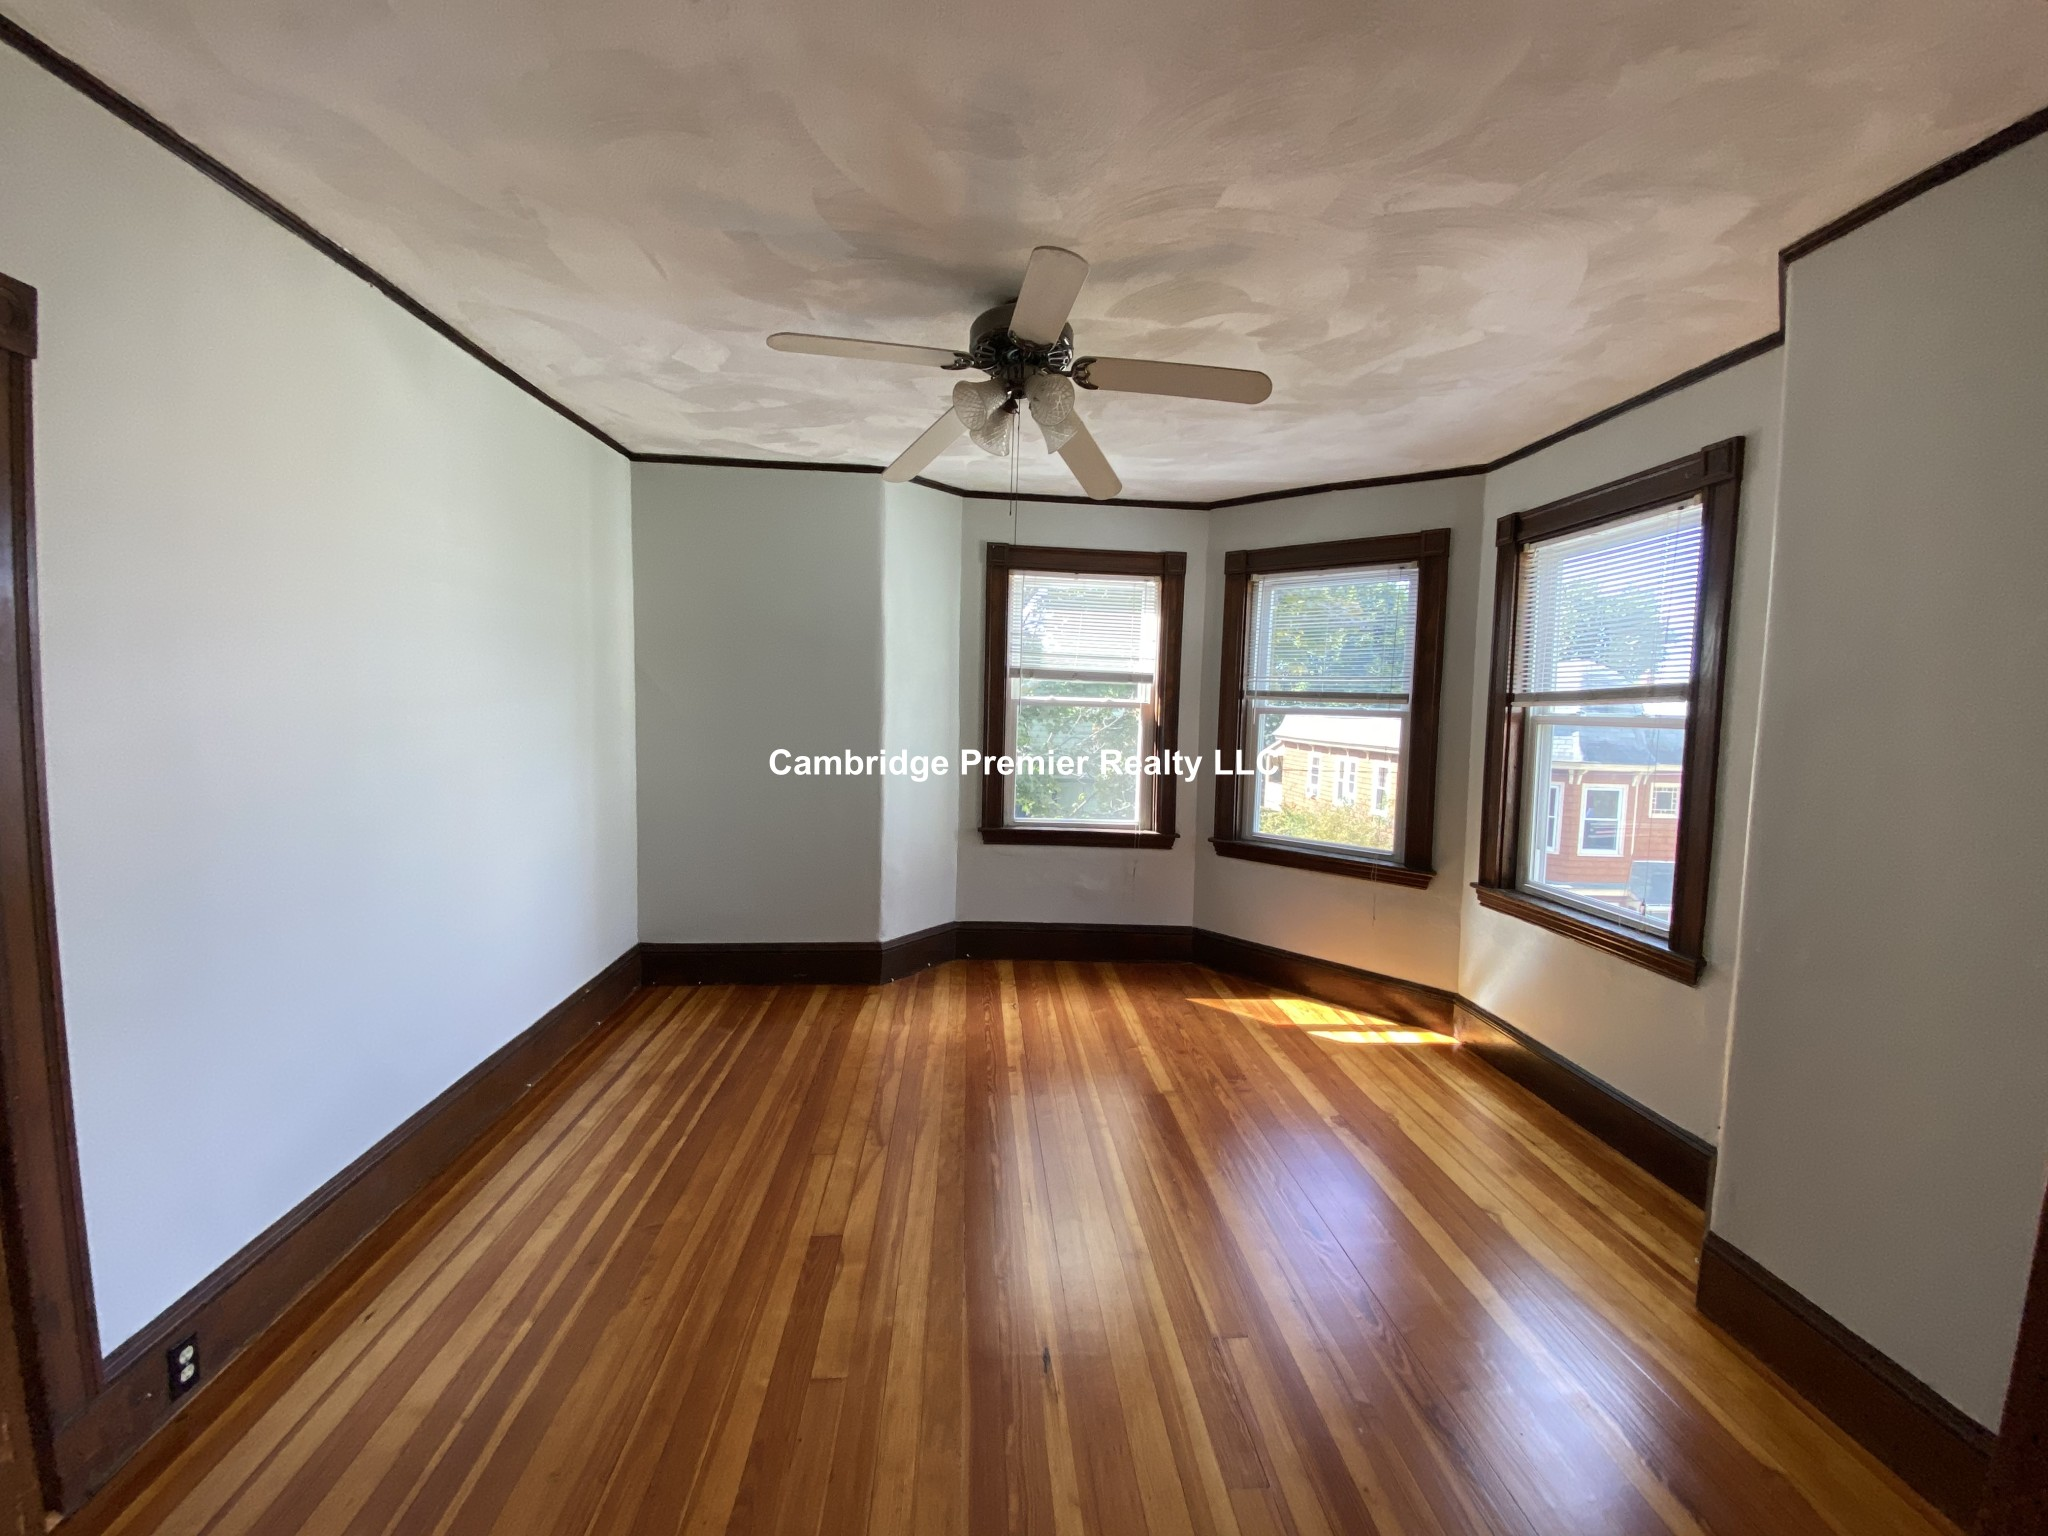 Pictures of  property for rent on Eustis St., Cambridge, MA 02140